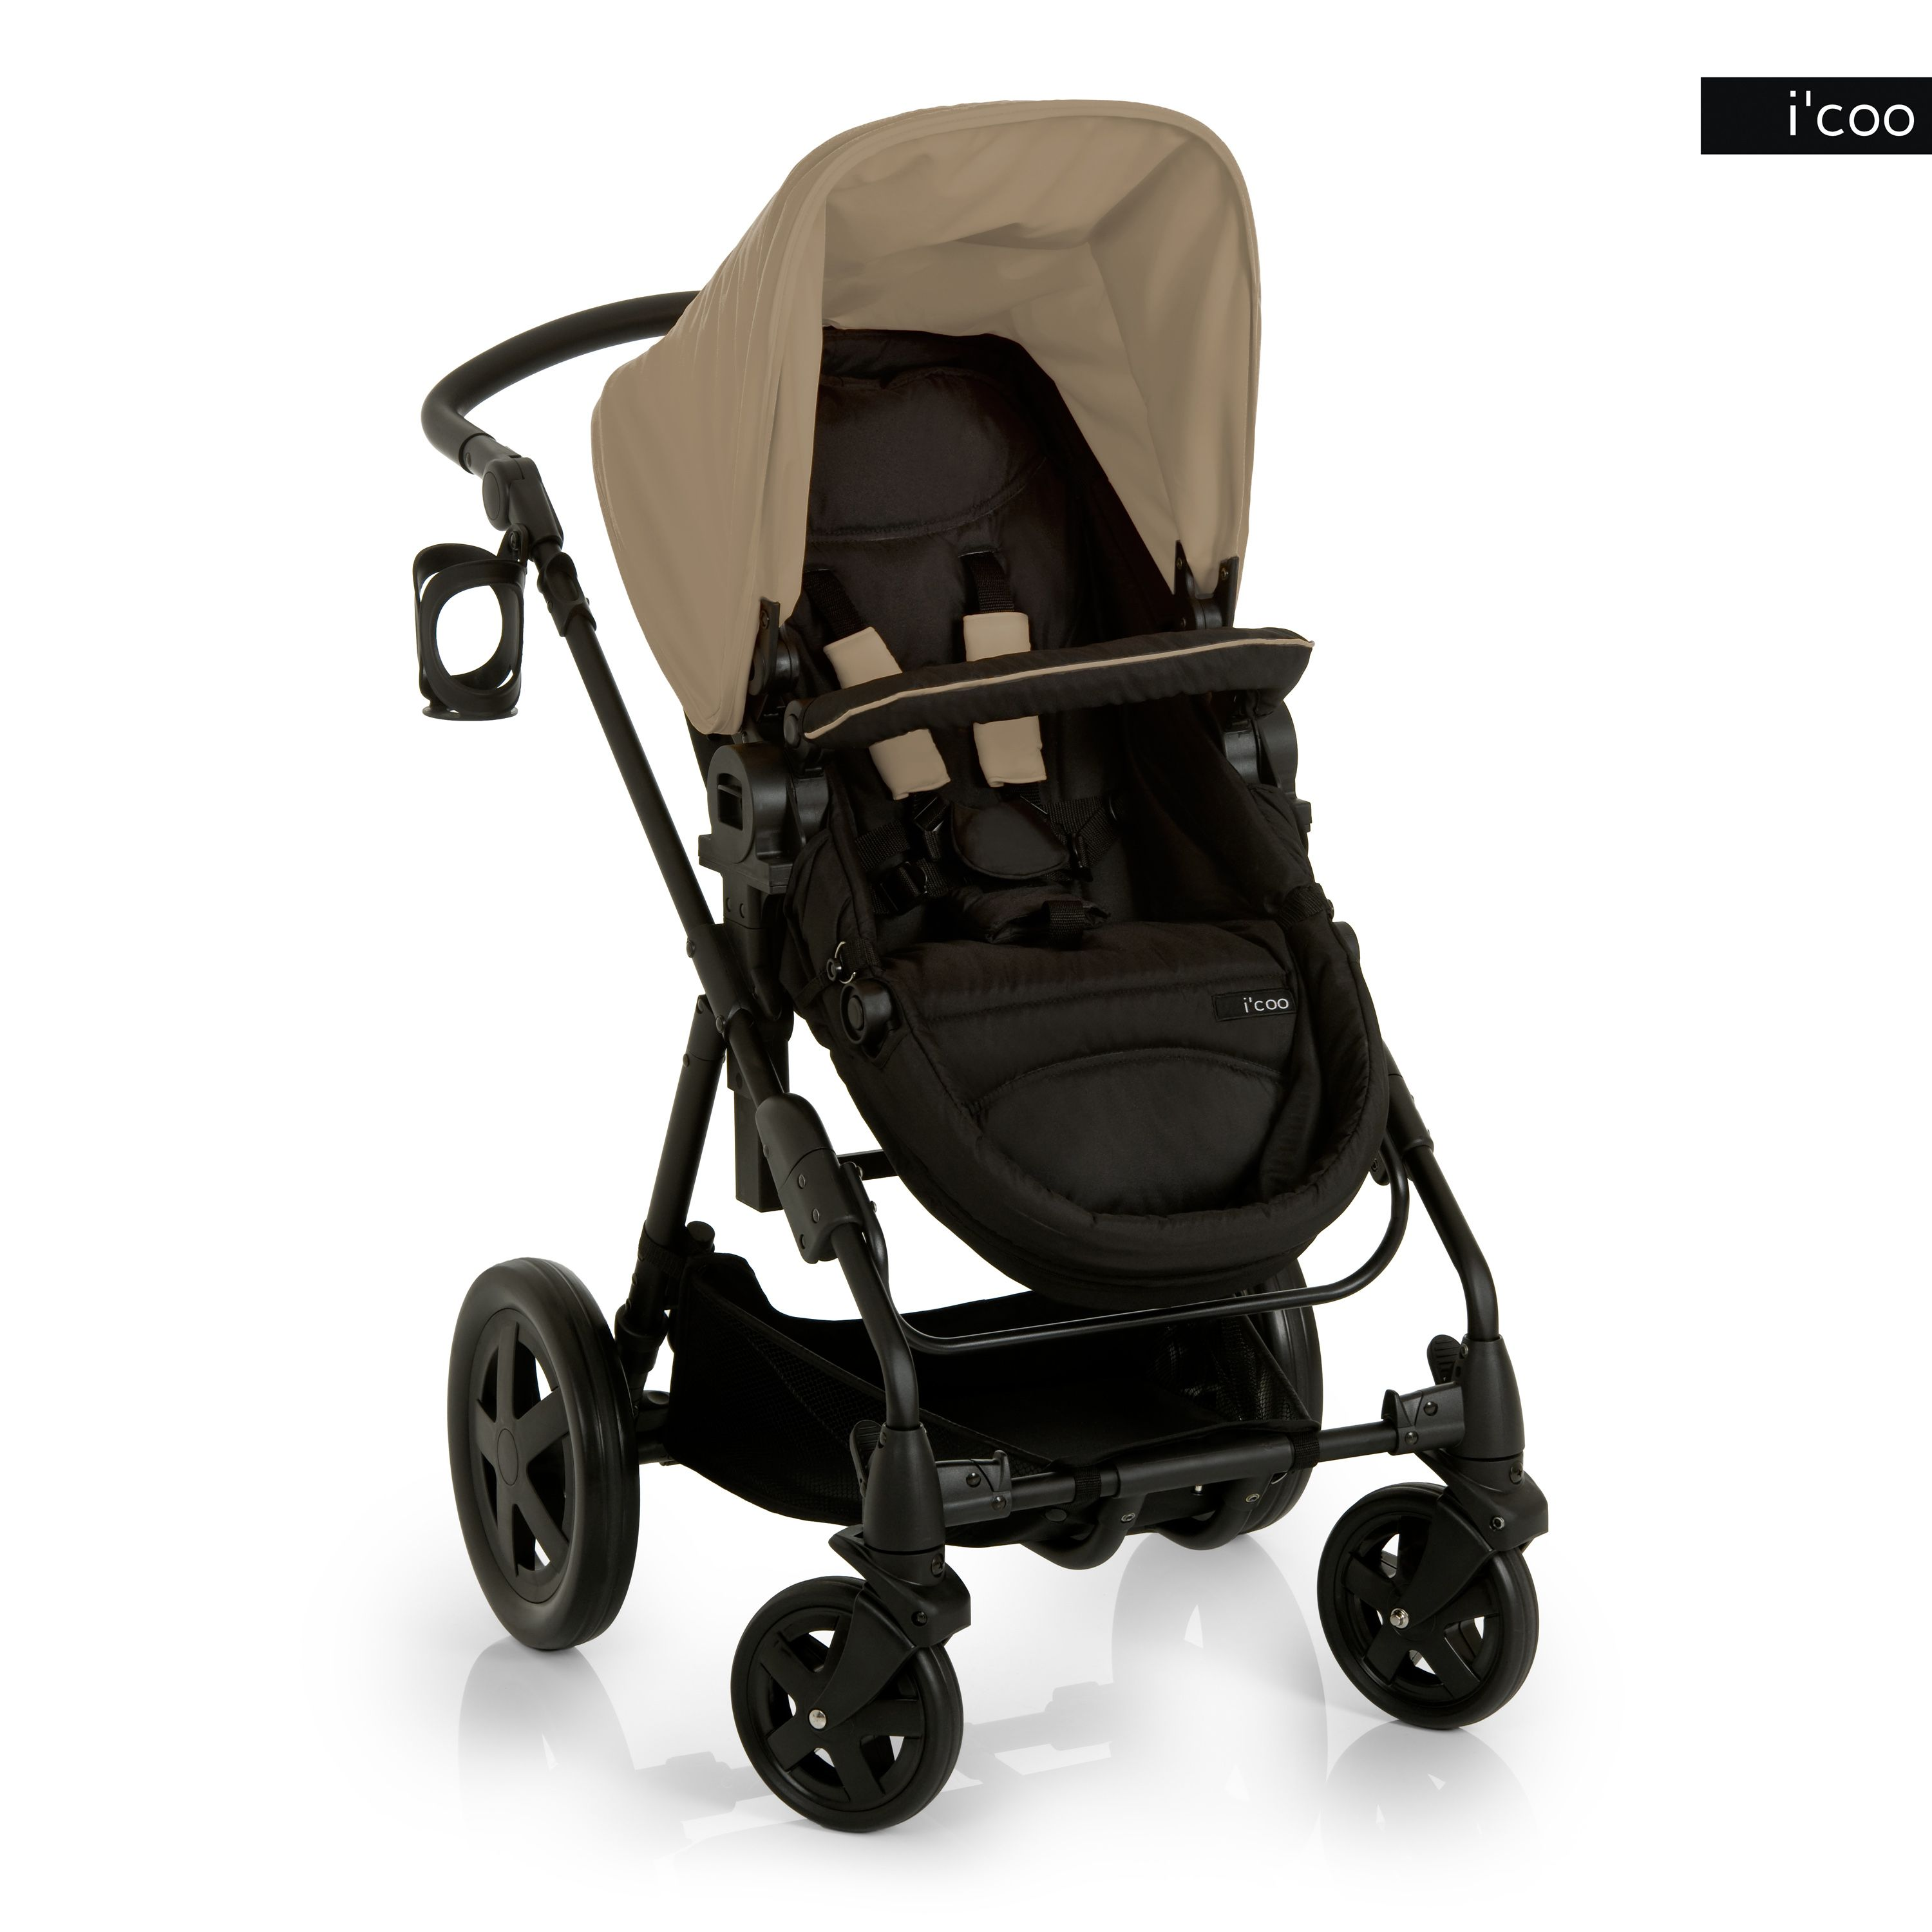 i coo n Stroller in Black Red Beige color is available now at